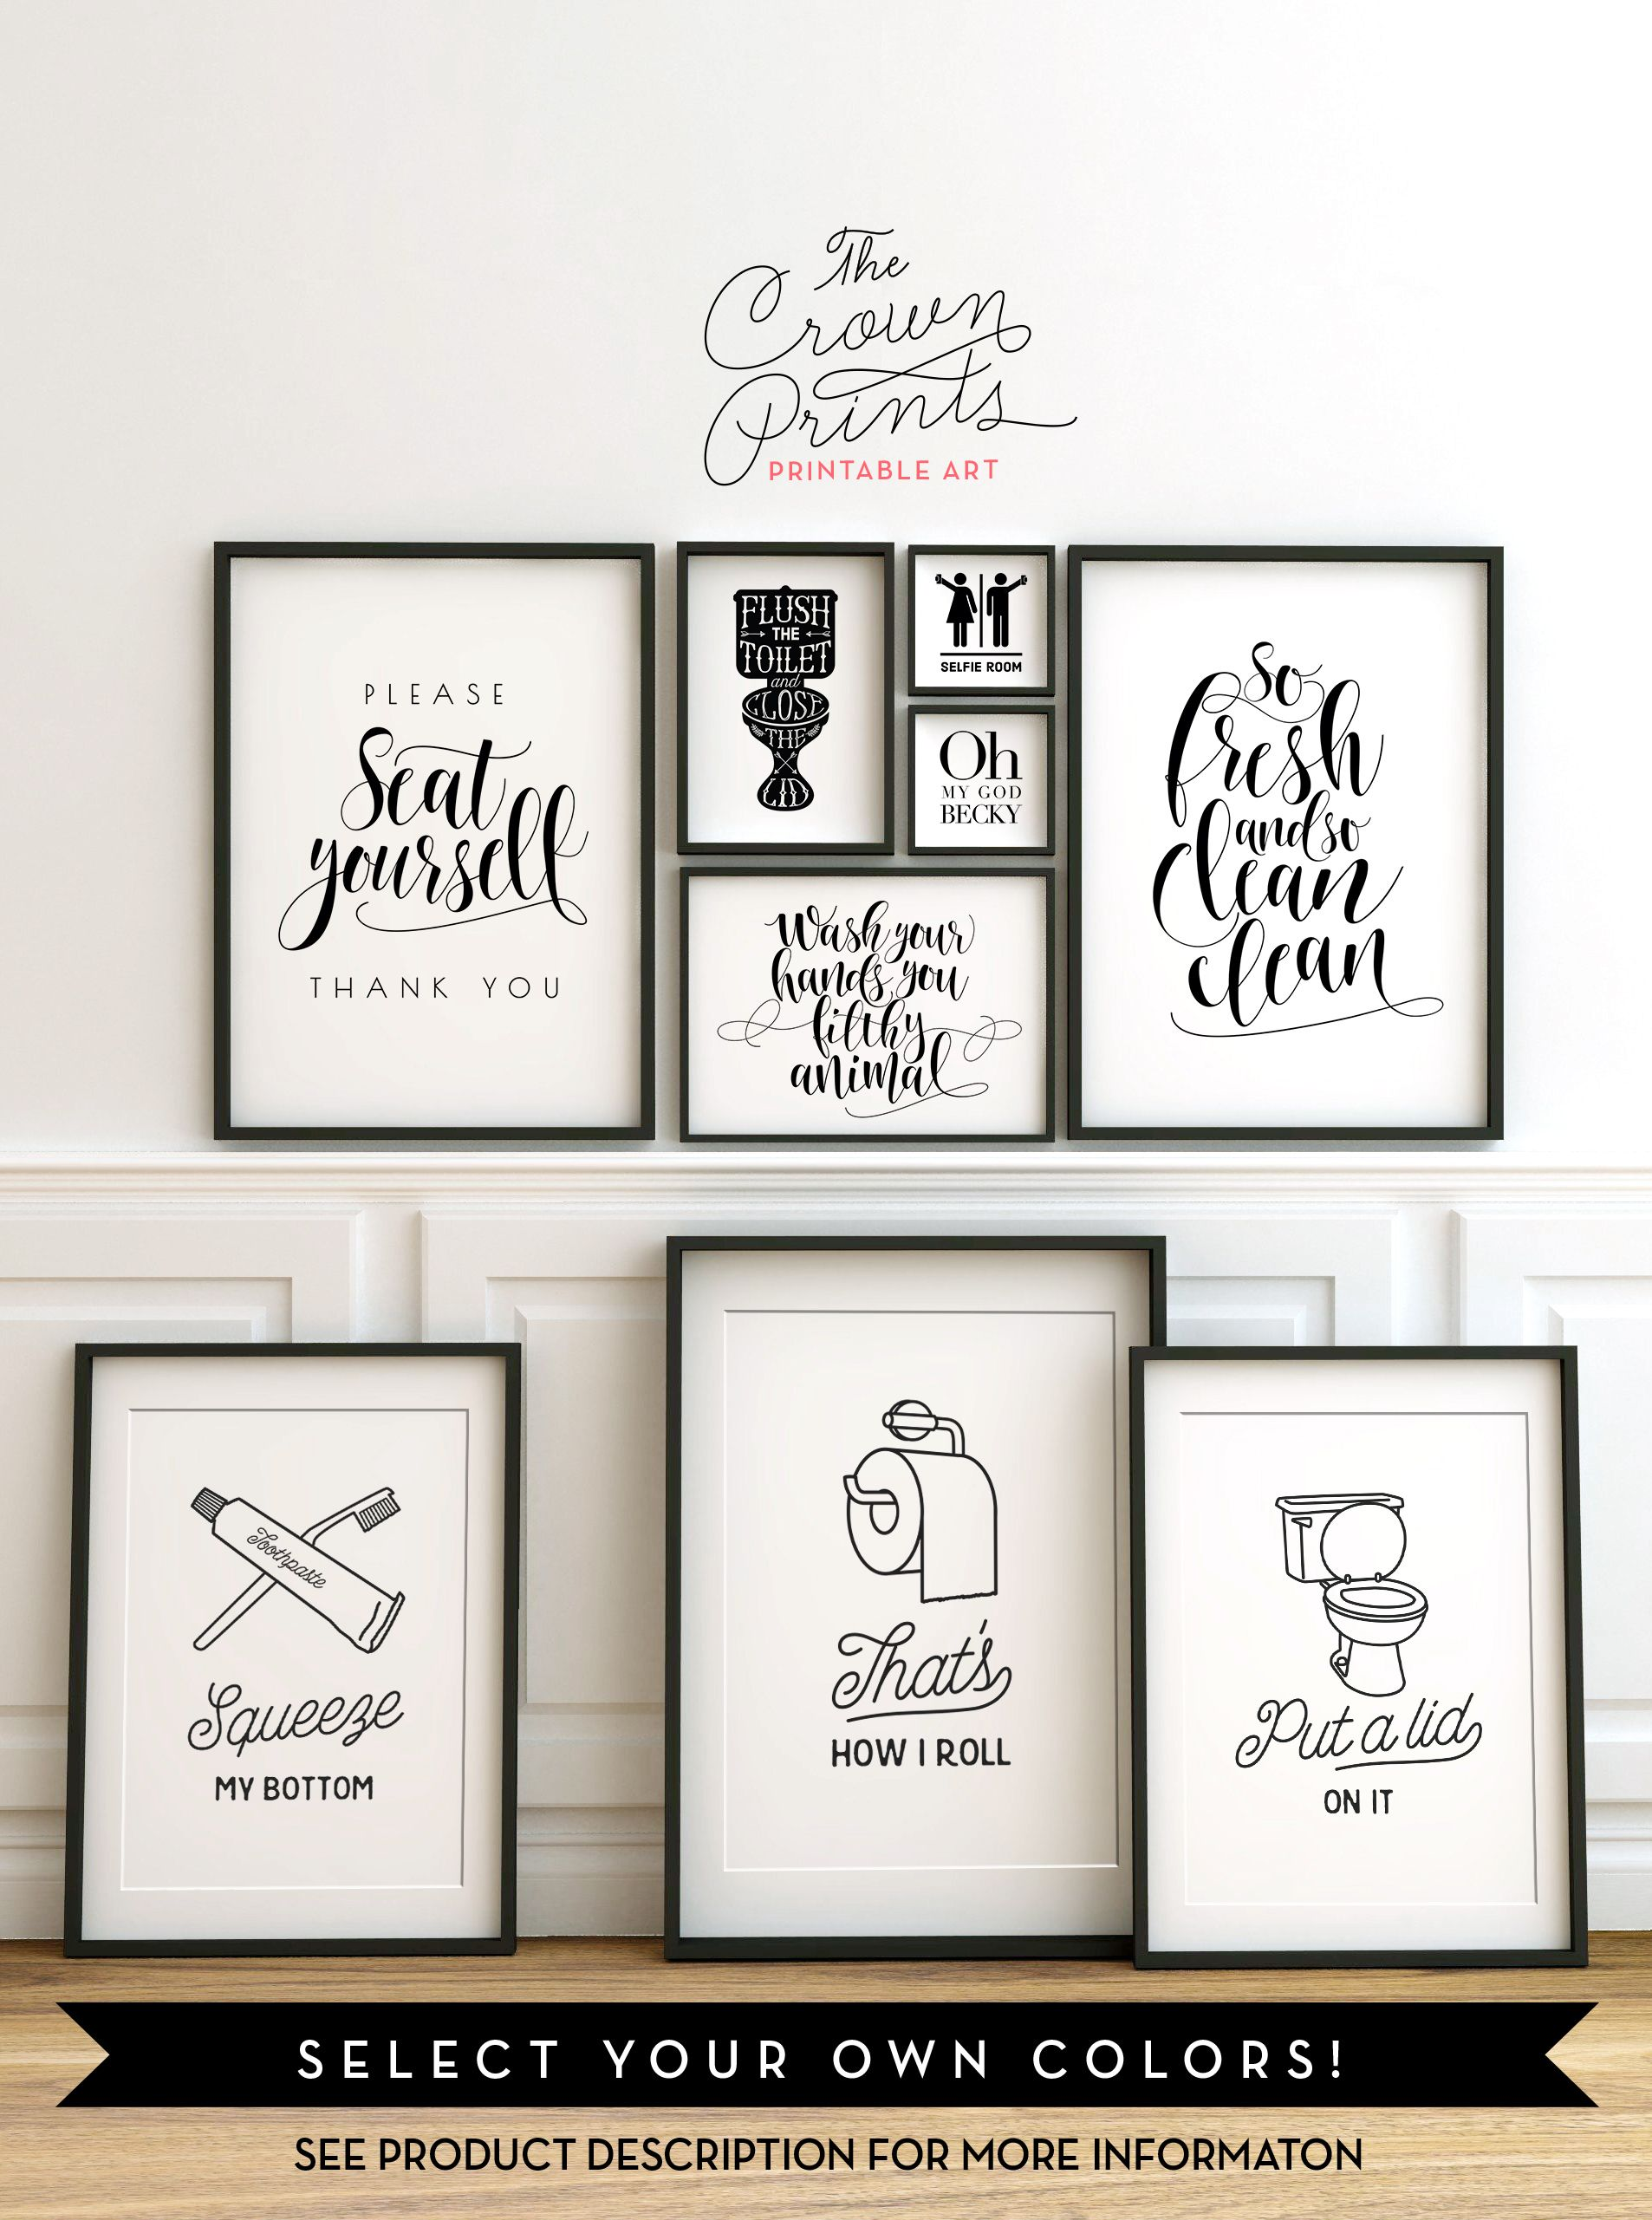 Printable Bathroom Wall Art From The Crown Prints On Etsy Lots Of Funny Quotes And Design Bathroom Wall Art Printables Funny Bathroom Art Bathroom Printables